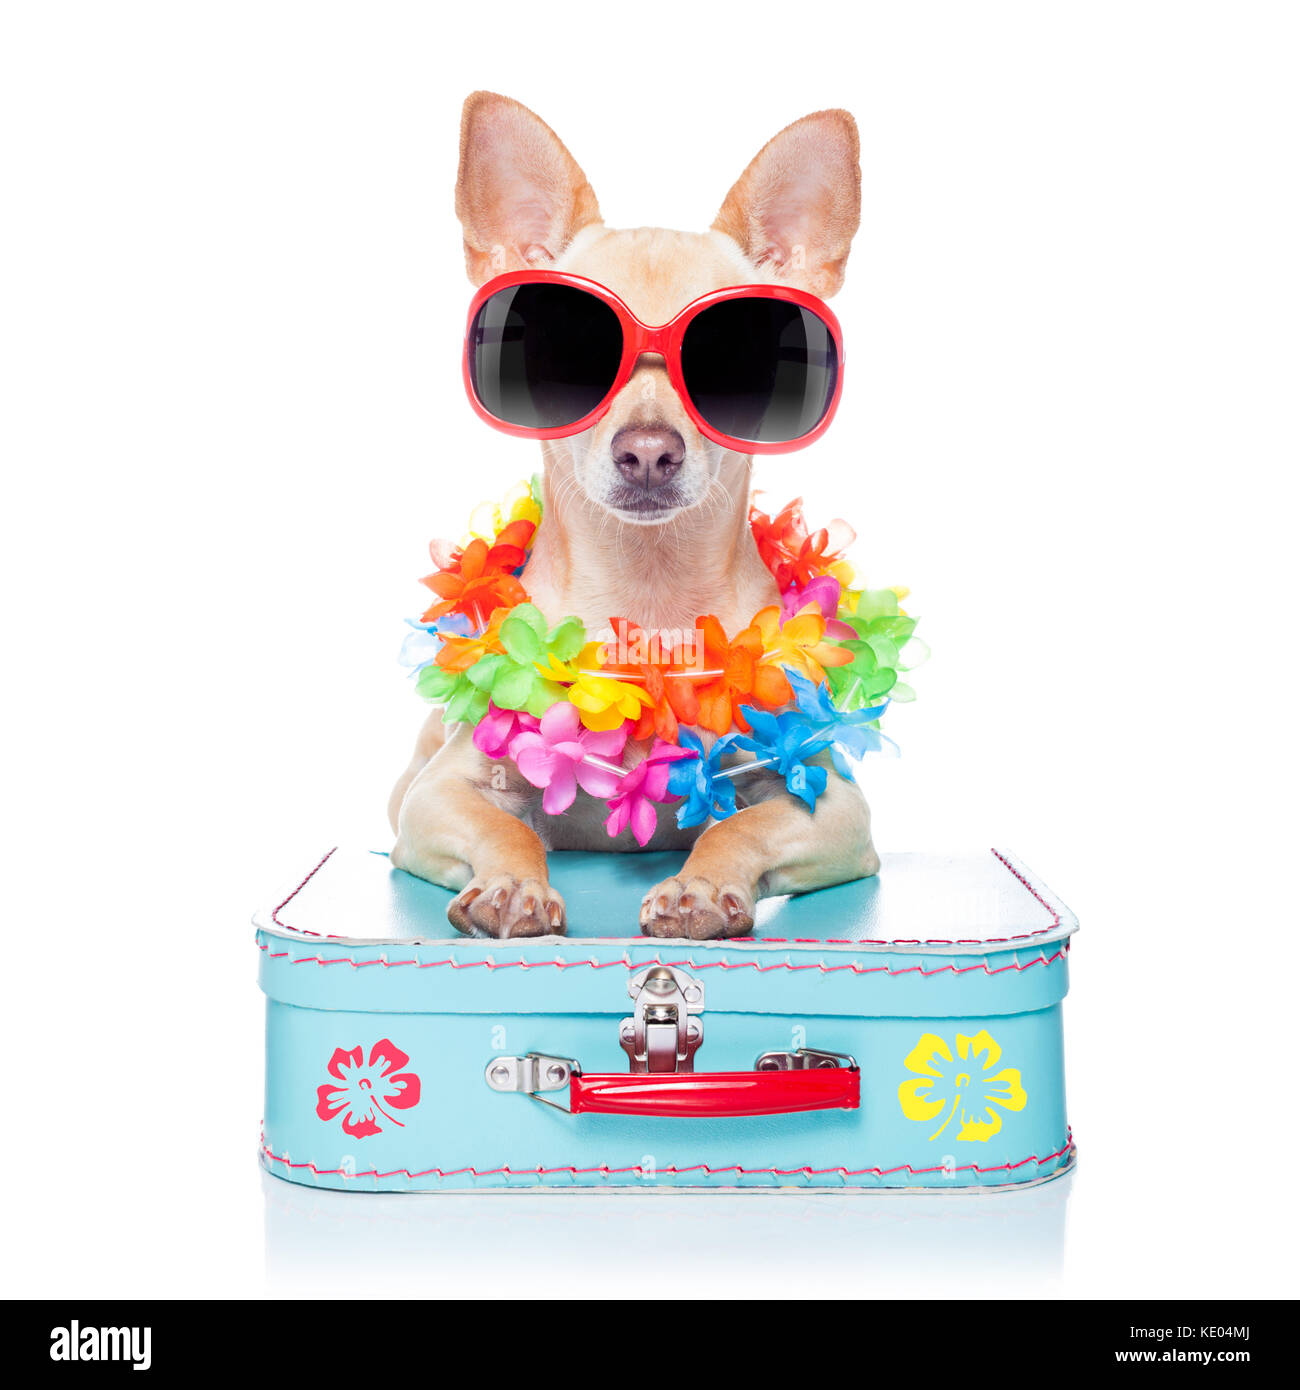 chihuahua dog with bags and luggage or baggage, ready for summer vacation holidays at the beach,isolated on white - Stock Image